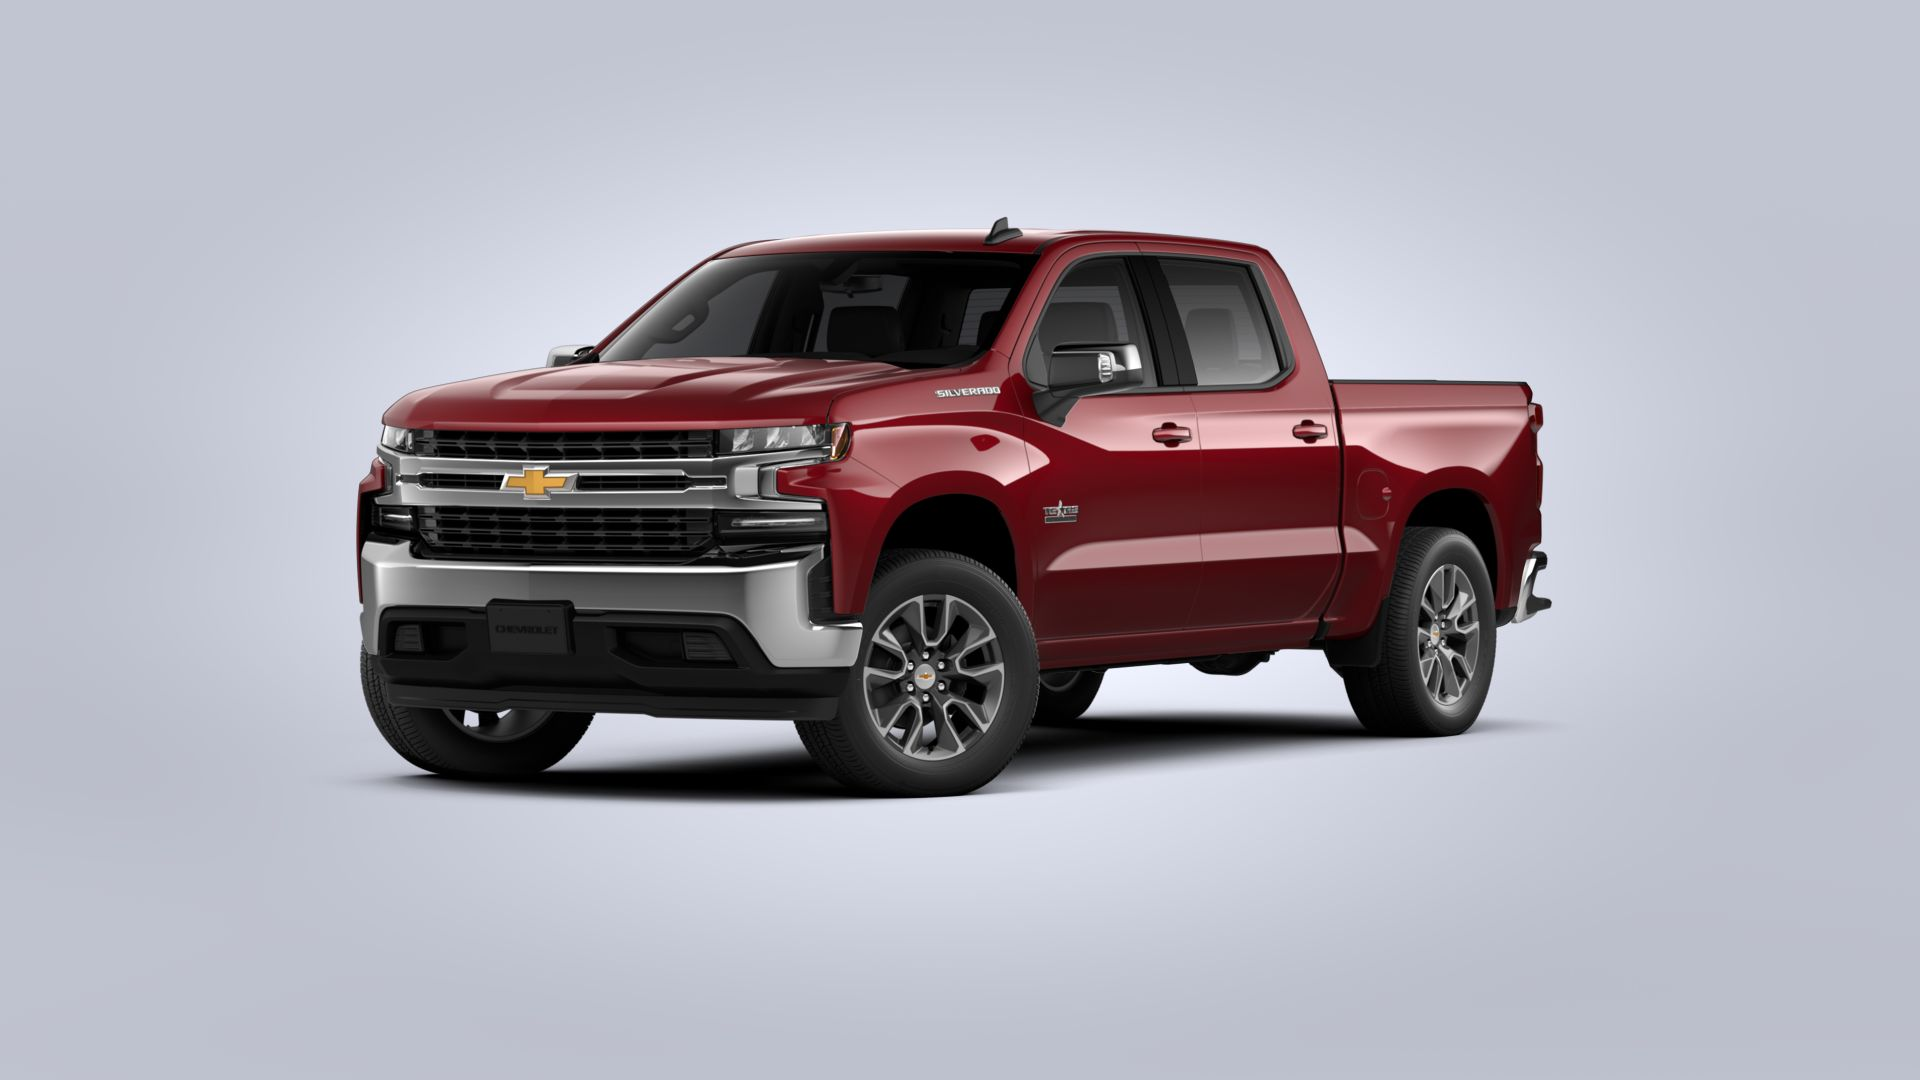 New 2020 Chevrolet Silverado 1500 For Sale At Galleria Chevrolet Vin 3gcpwcedxlg391748